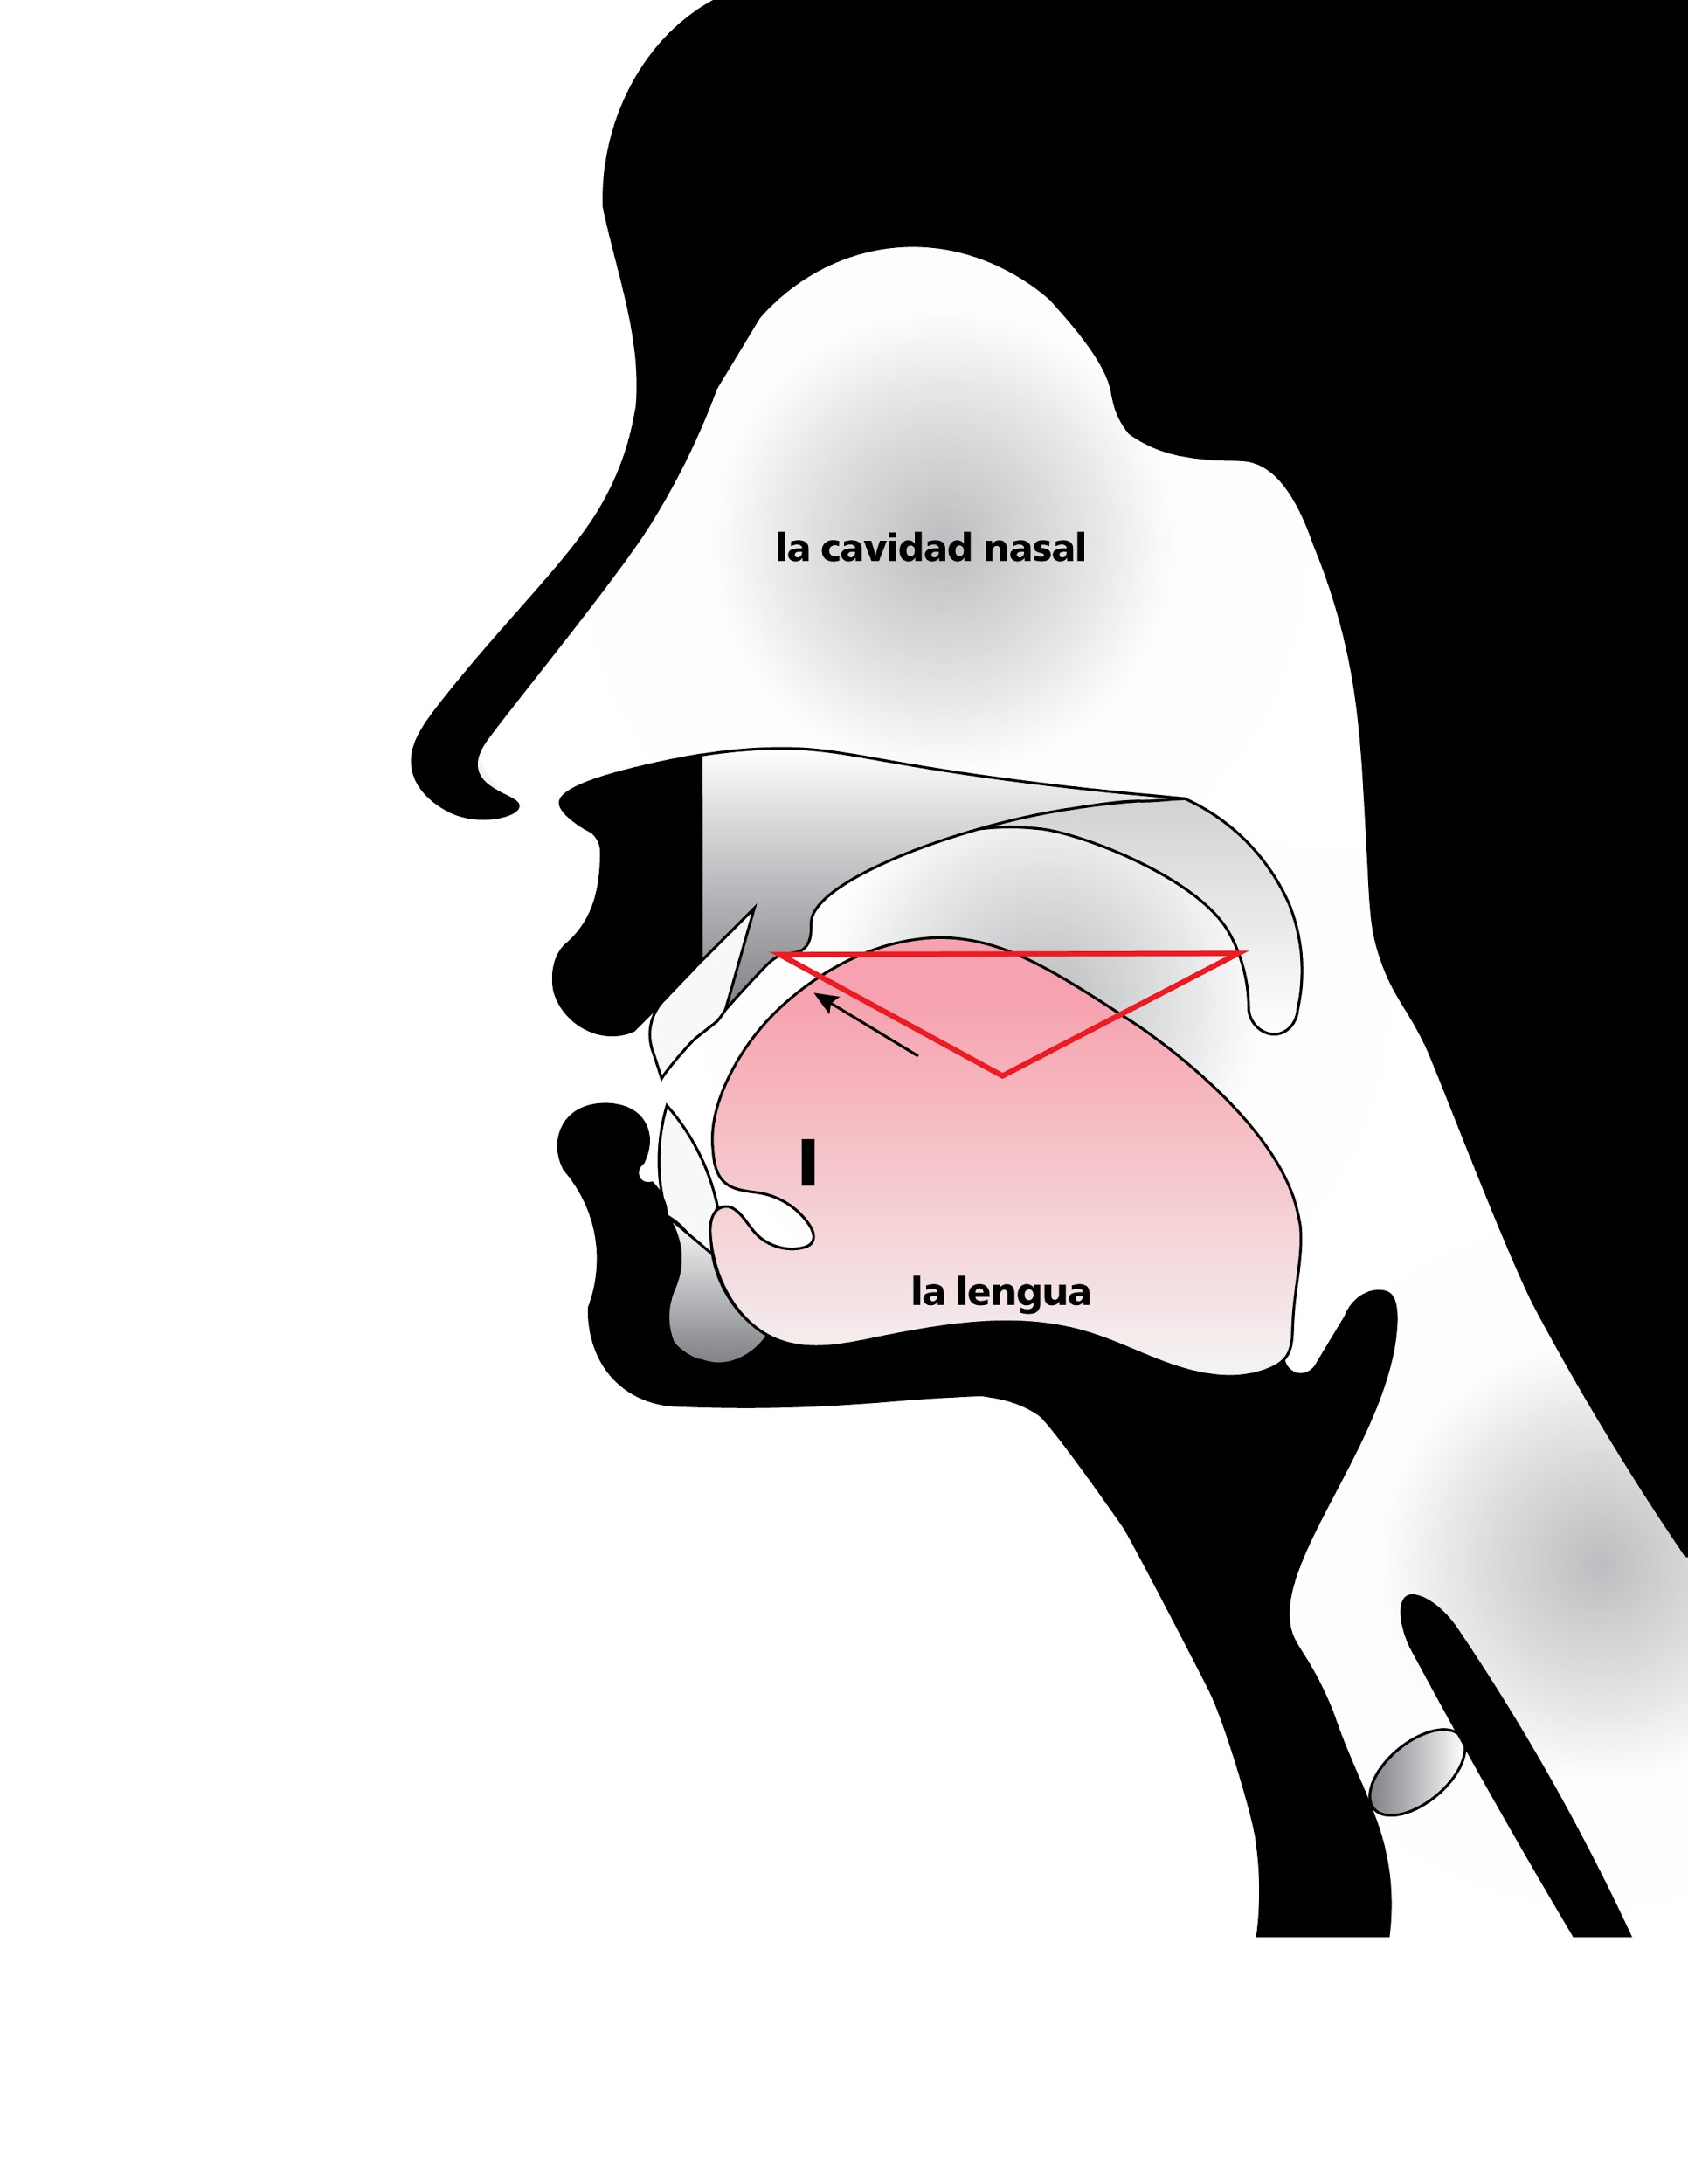 Anatomical sketch of head while speaking, emphasizing space of roof of mouth when tongue fully raised, in Spanish